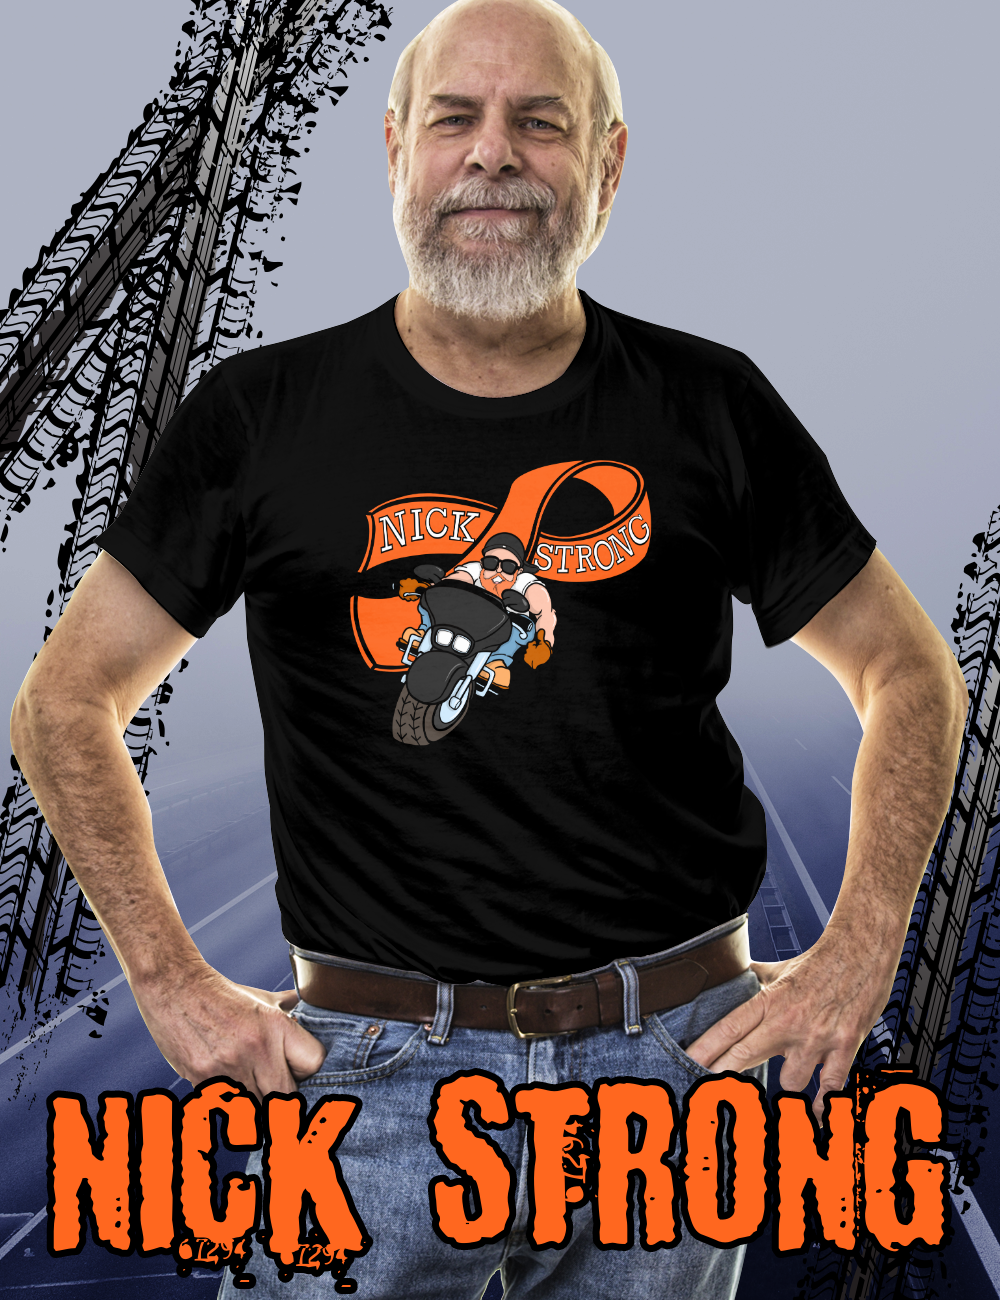 NICK STRONG Requested Larger Sizes – TeePublic T's & Hoodies